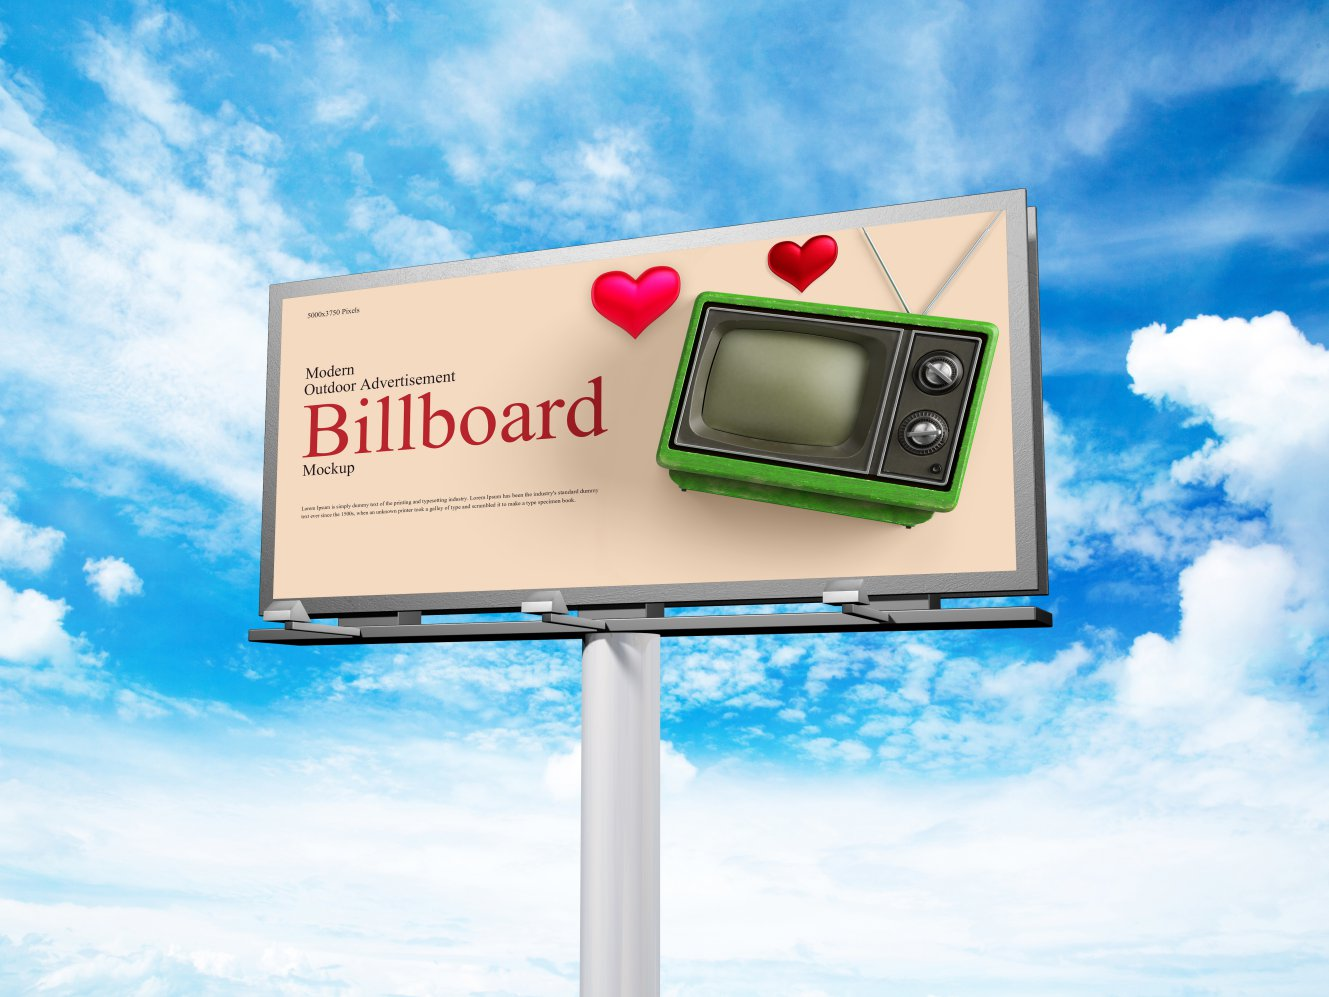 Free Modern Outdoor Advertisement Billboard Mockup скачать бесплатно